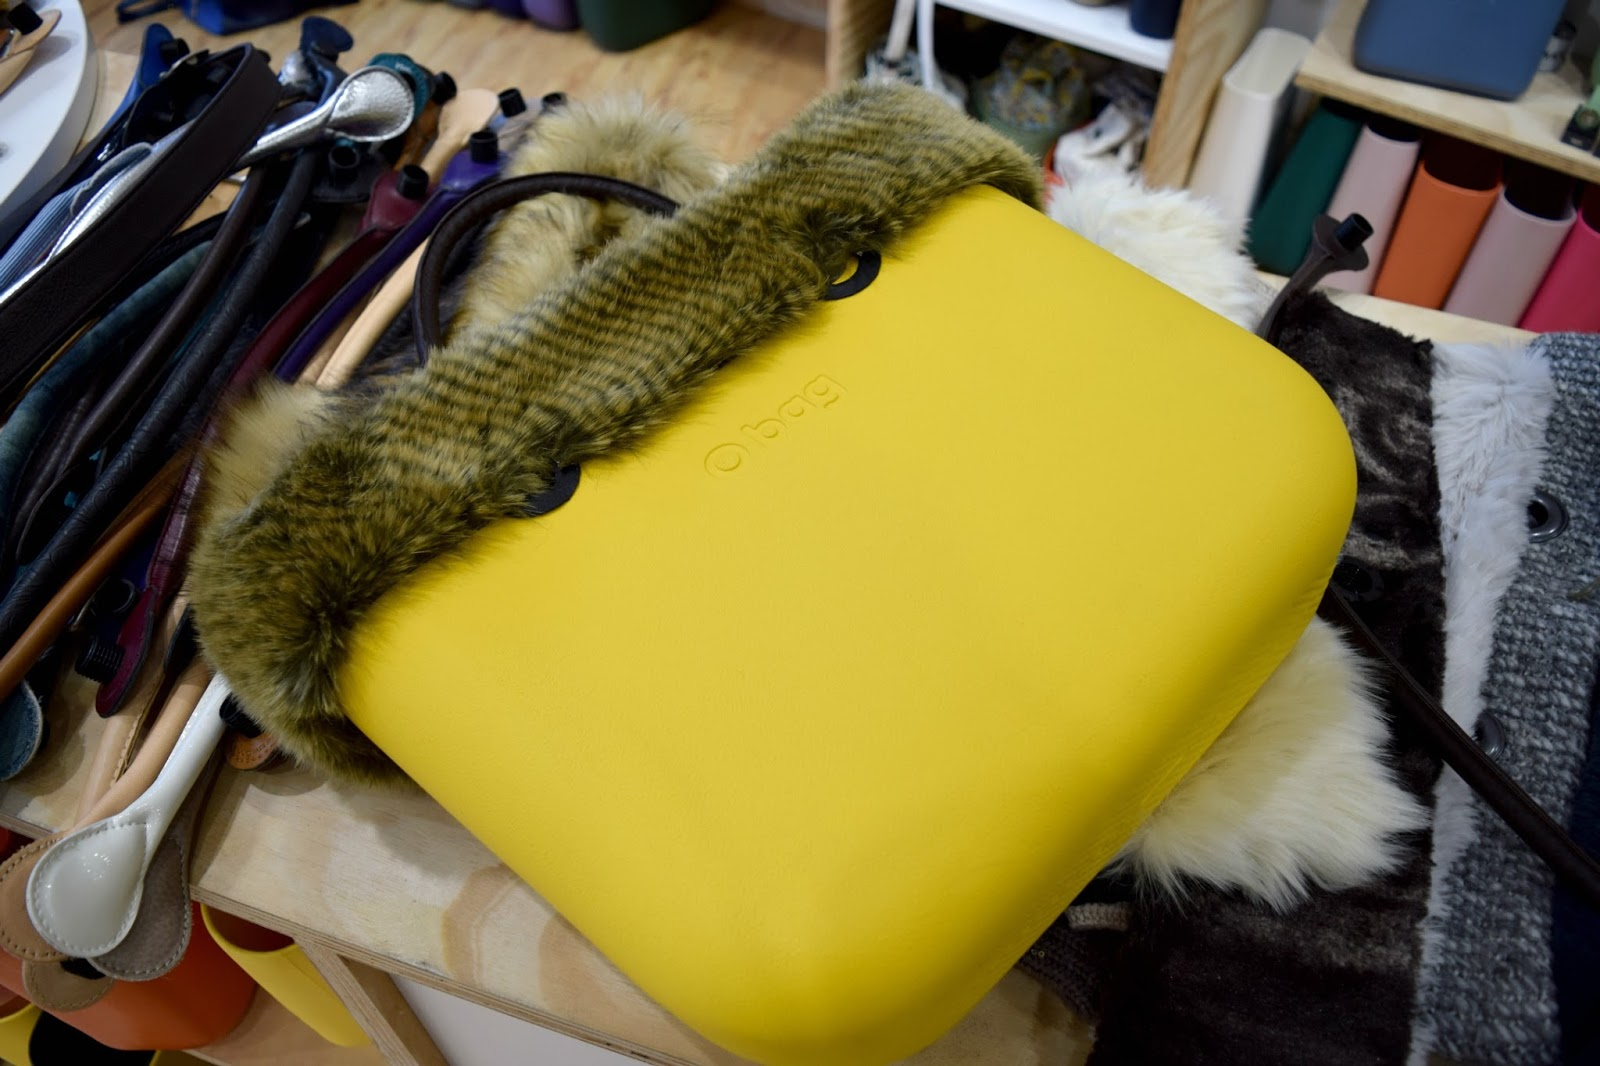 Bright yellow O Bag handbag